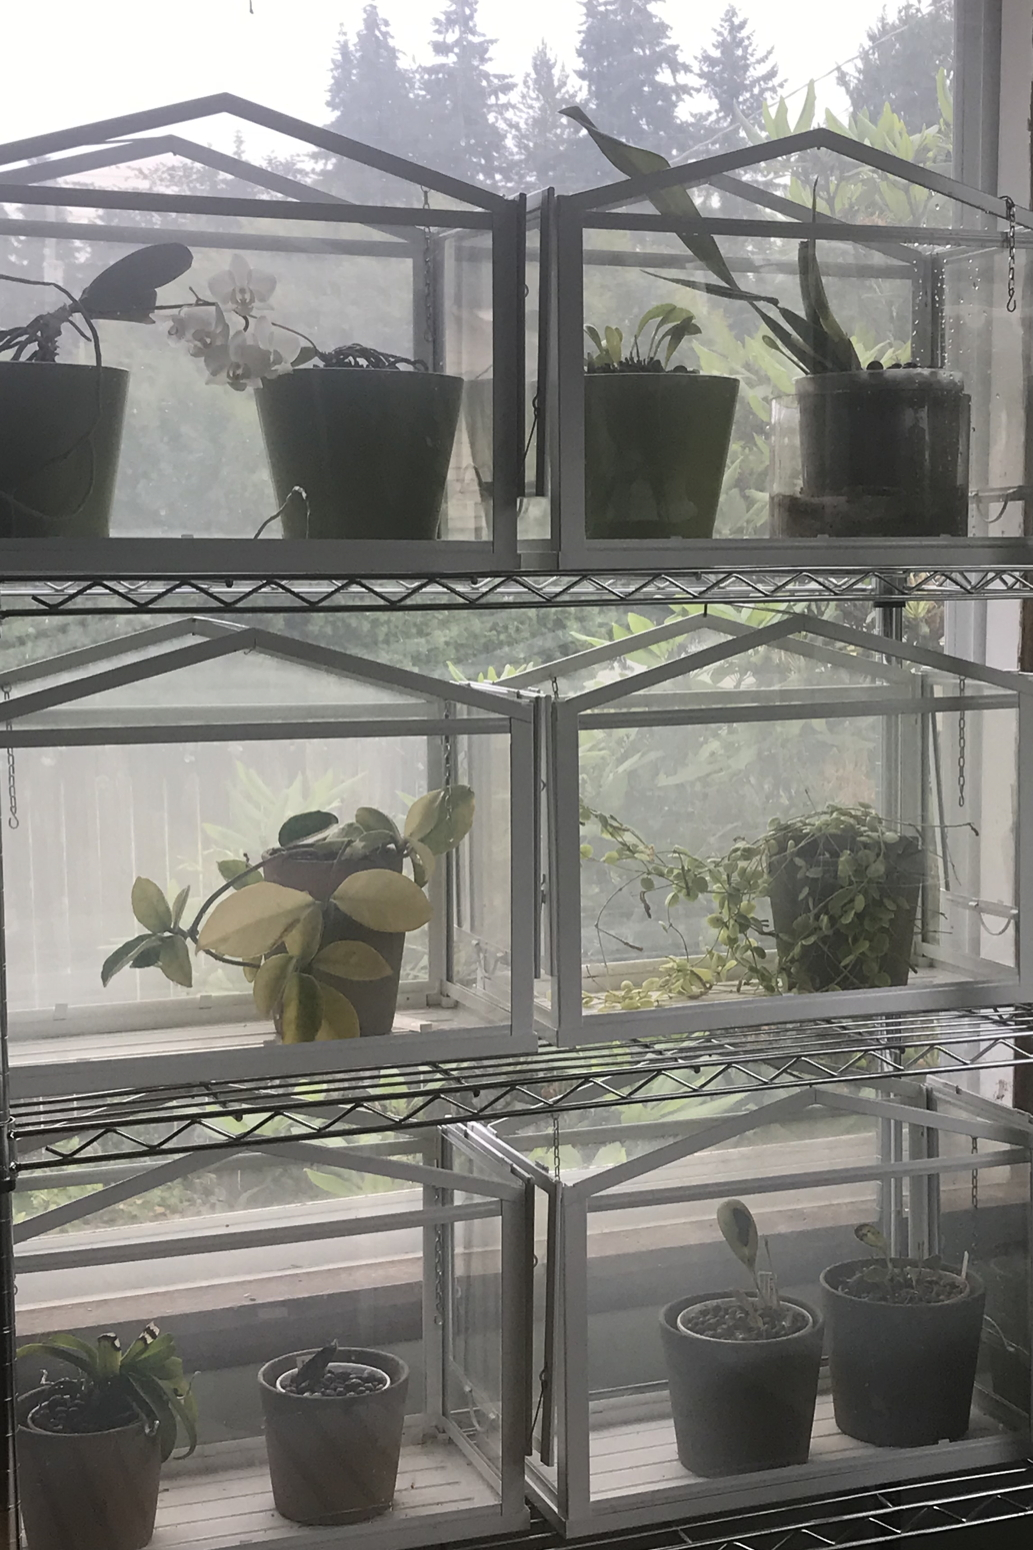 Six small Ikea Socker greenhouses on wire shelves hold orchids and hoyas.